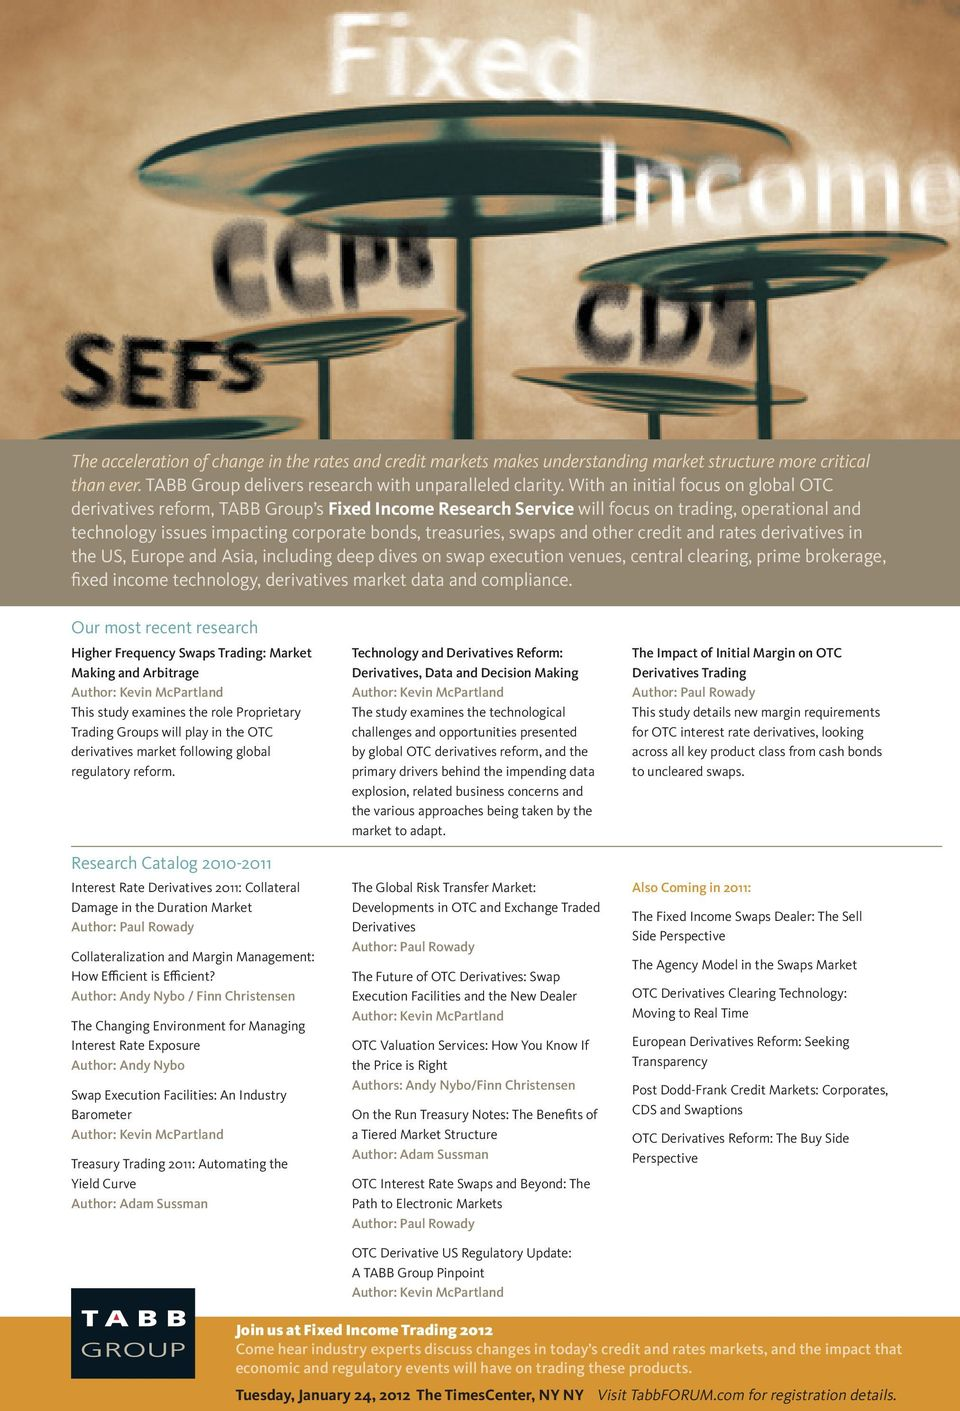 swaps and other credit and rates derivatives in the US, Europe and Asia, including deep dives on swap execution venues, central clearing, prime brokerage, fixed income technology, derivatives market